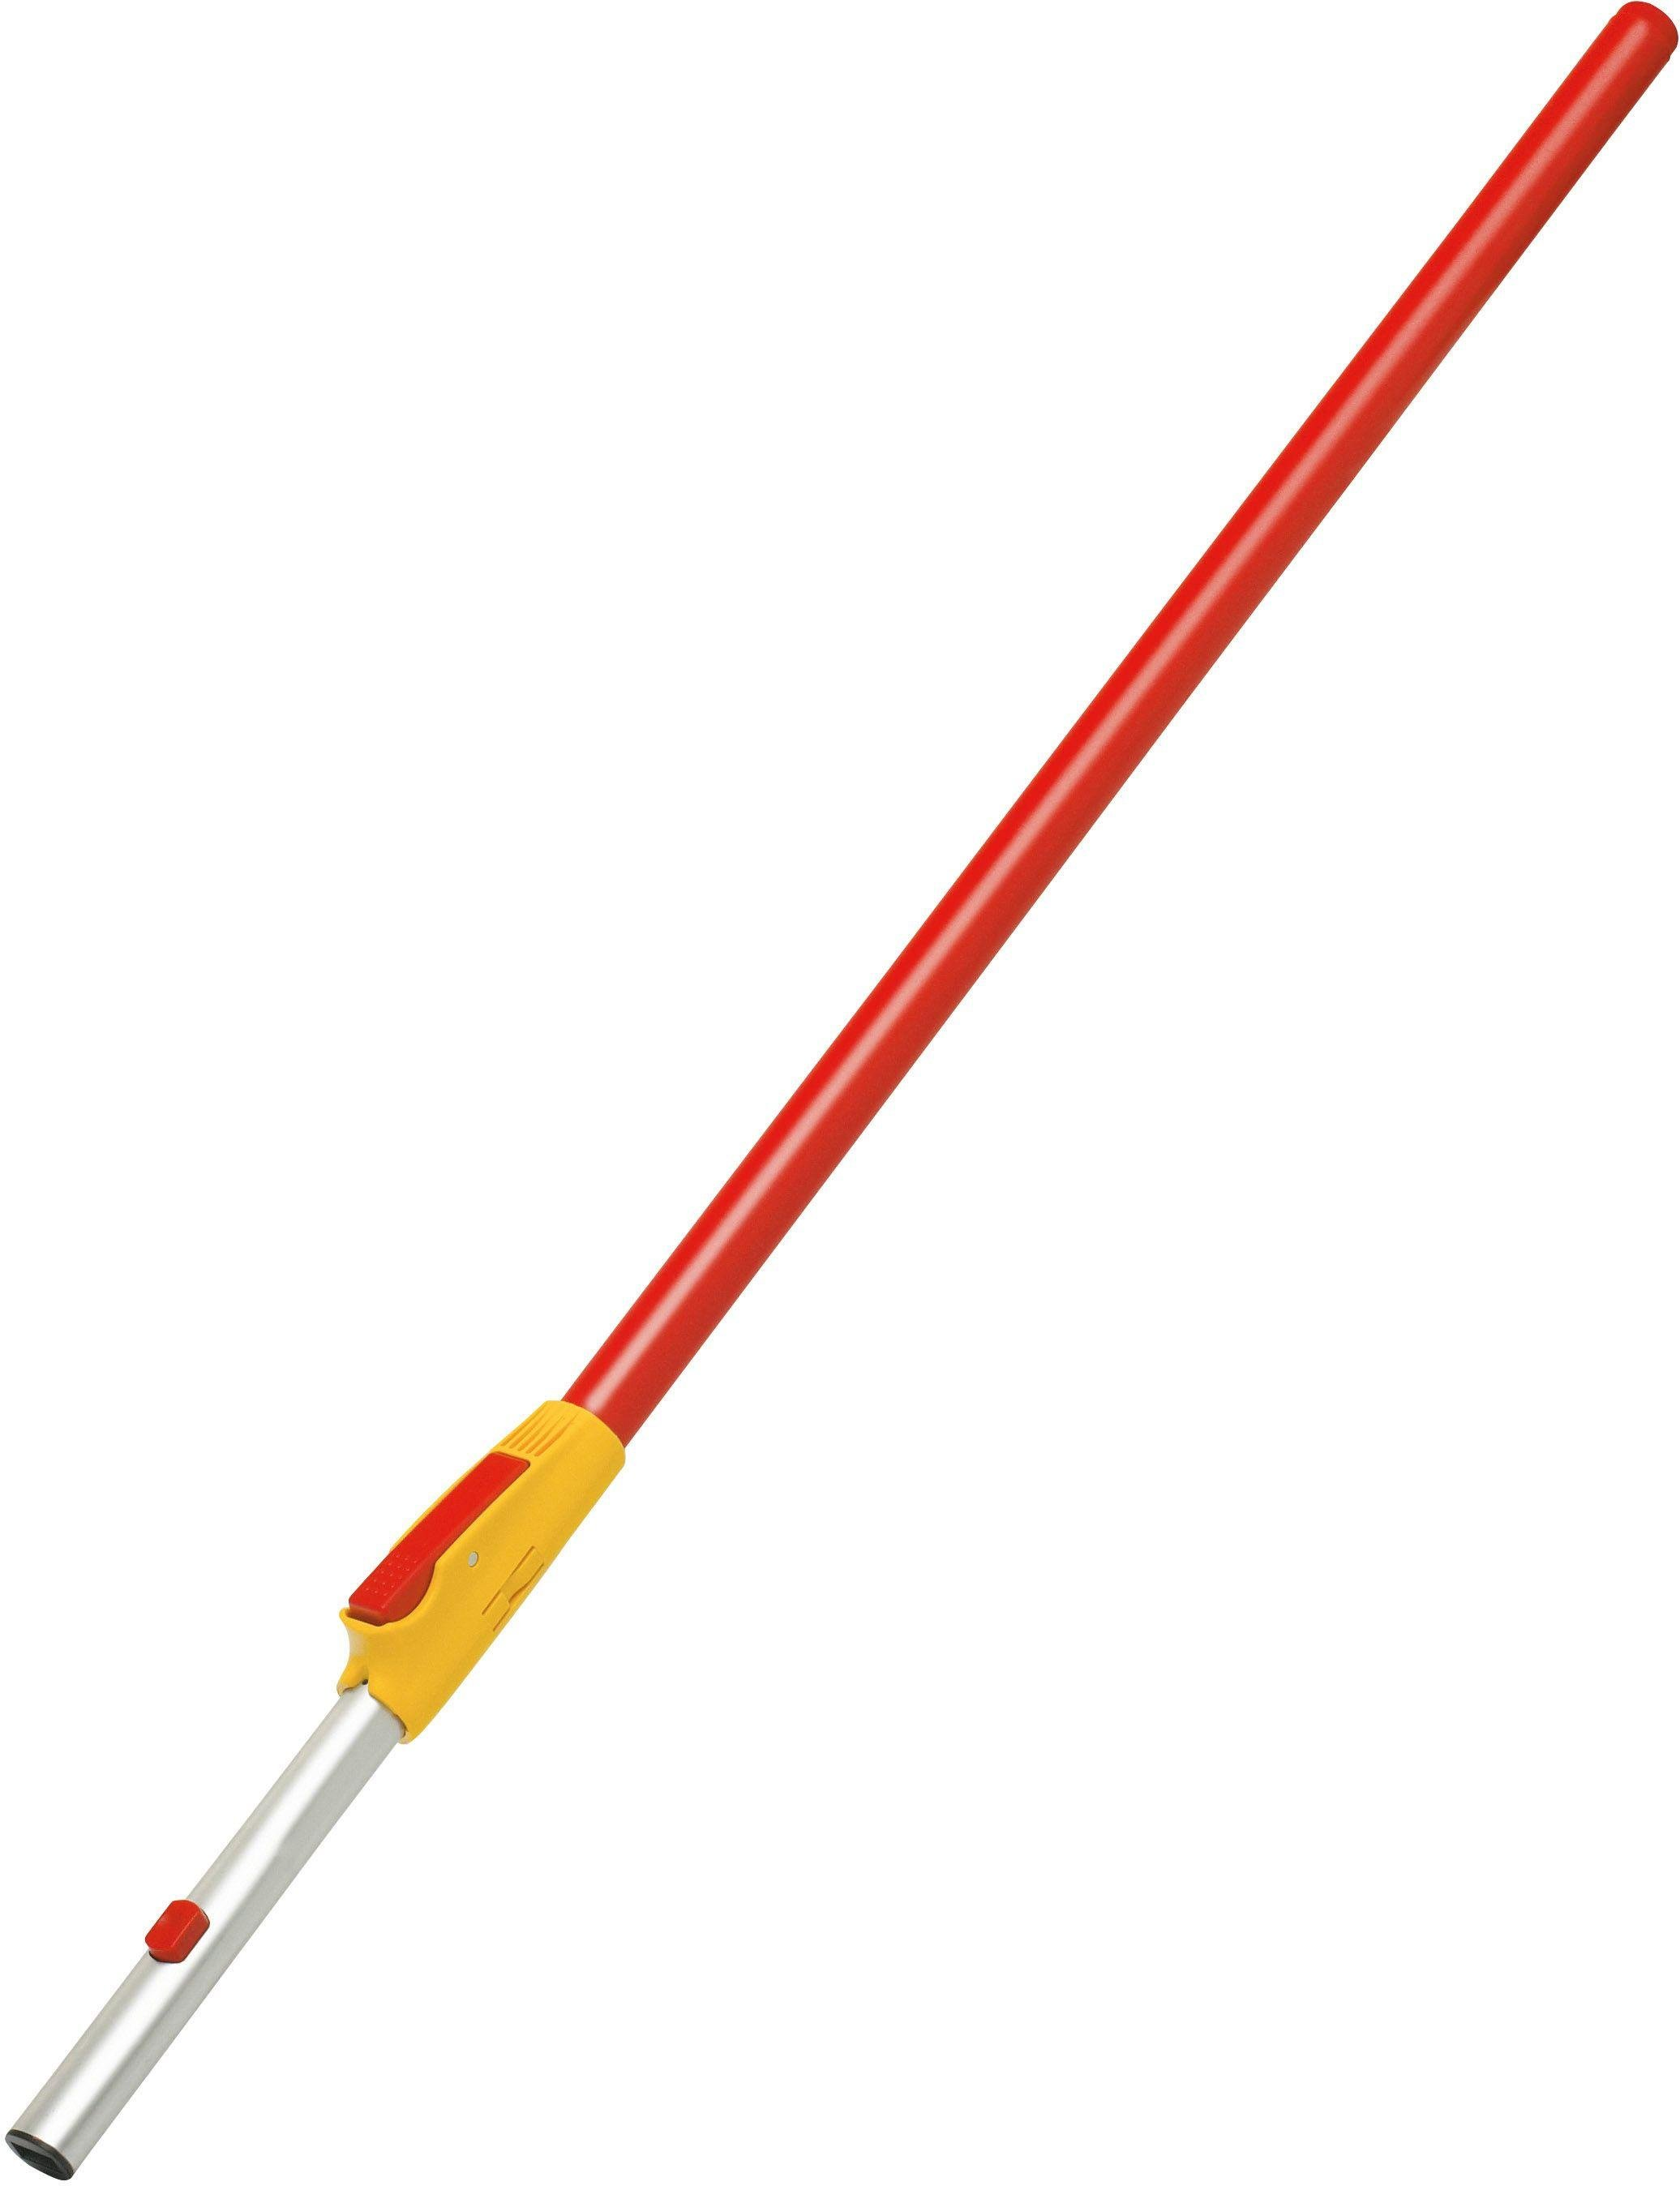 wolf-garten-zmv4-multichange-telescopic-handle-220-400cm